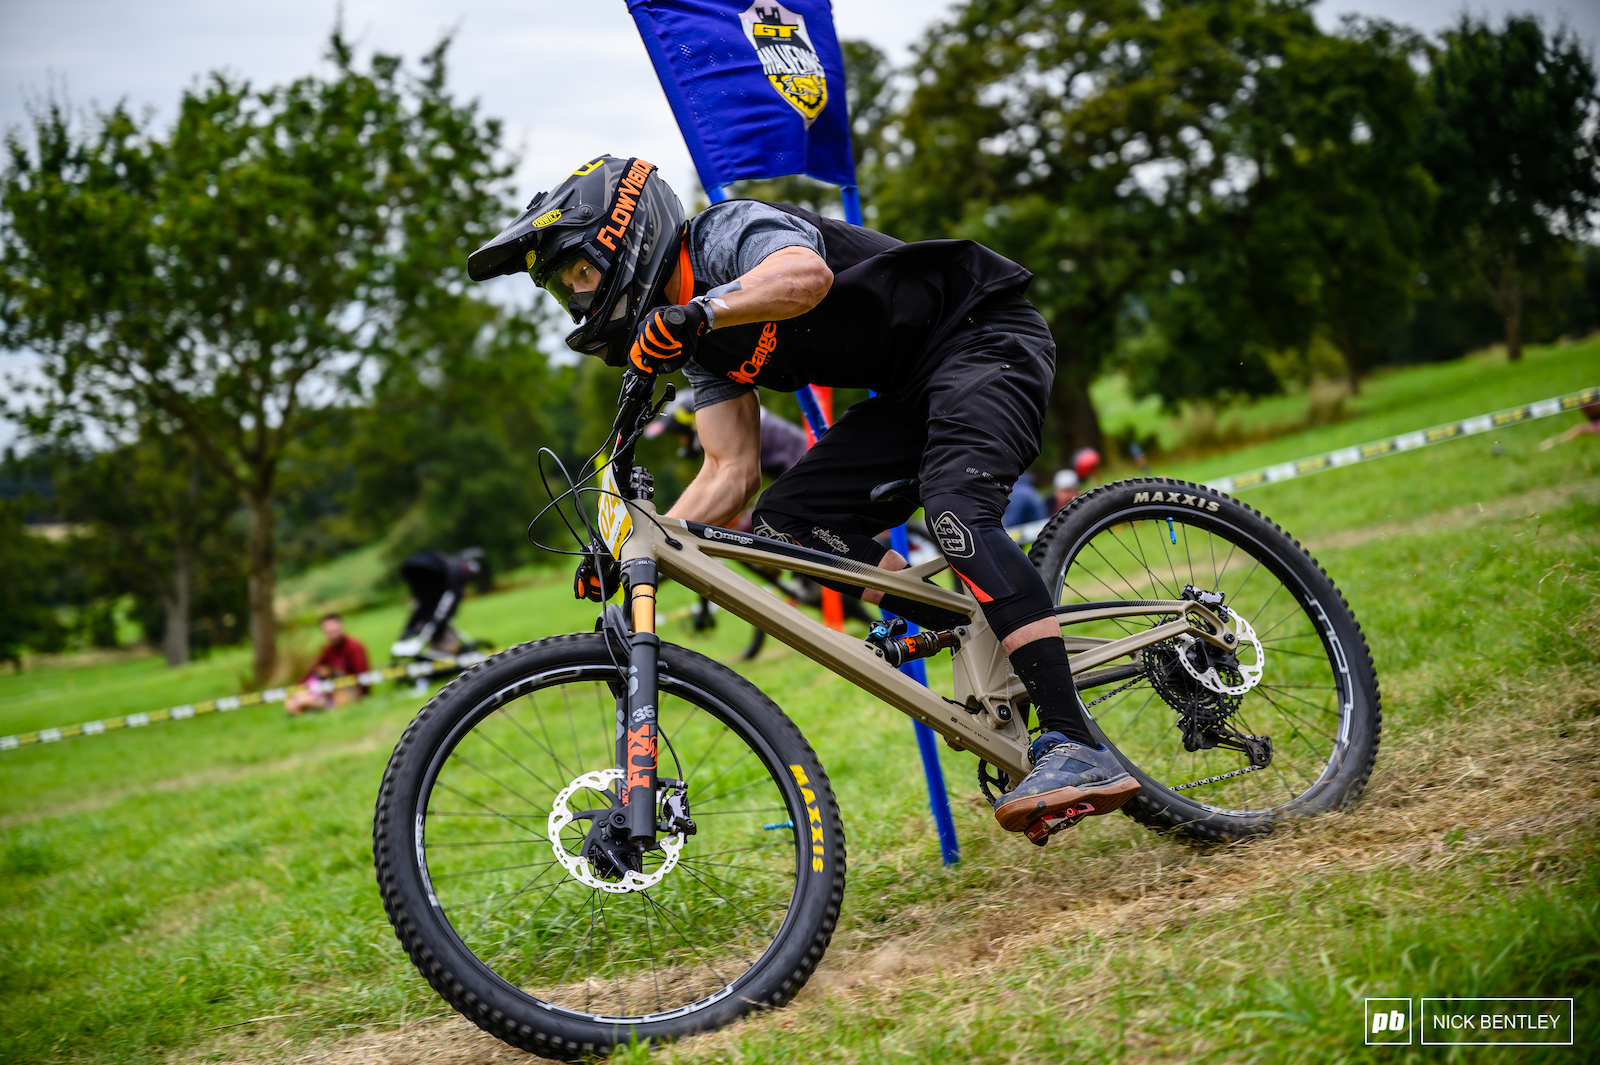 Enduro bikes seemed to be the weapon of choice for most racers